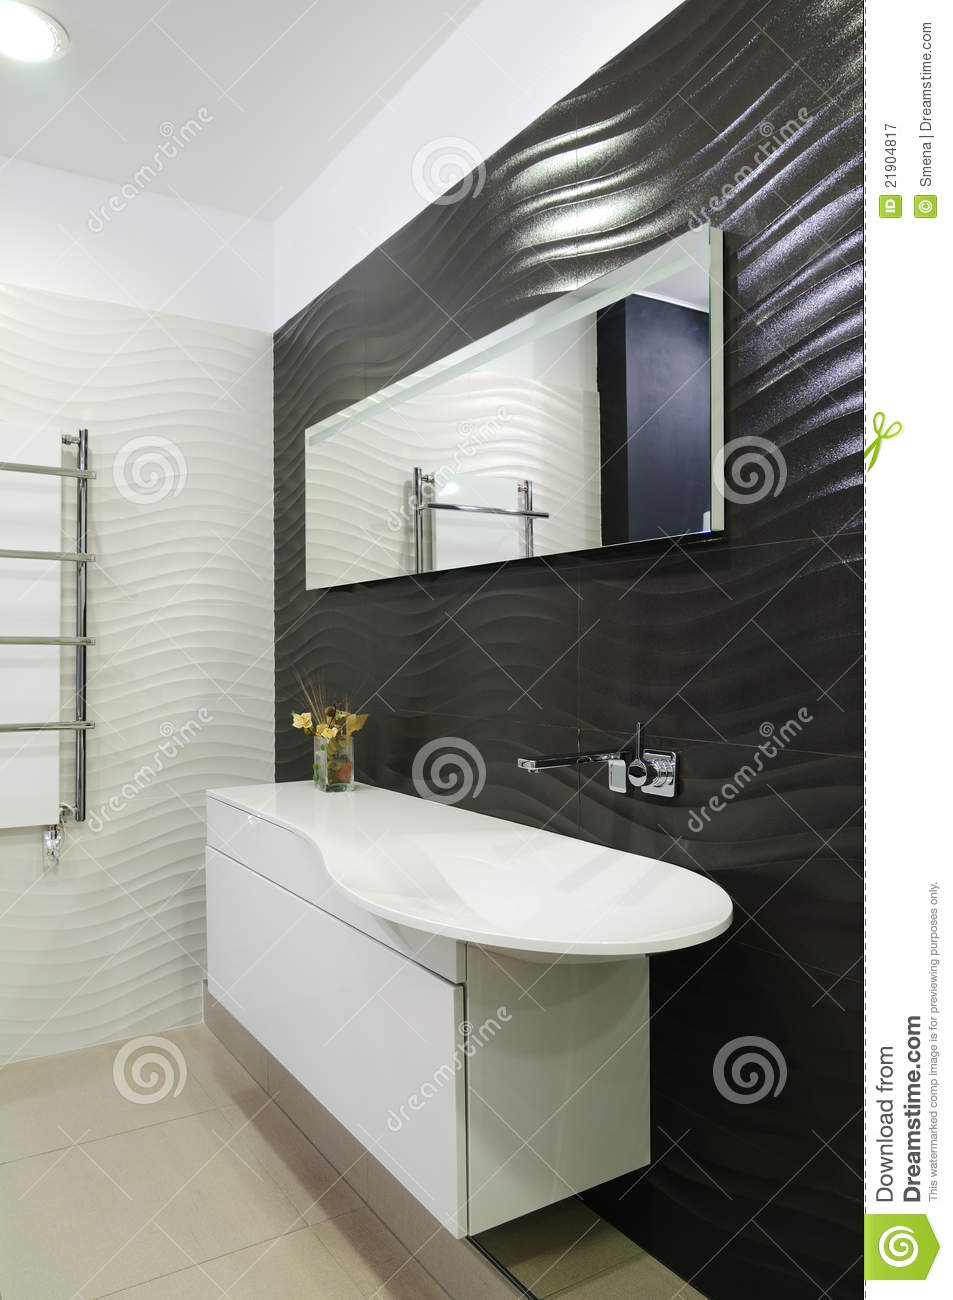 toilettes modernes image stock image du agencement toilettes 21904817. Black Bedroom Furniture Sets. Home Design Ideas